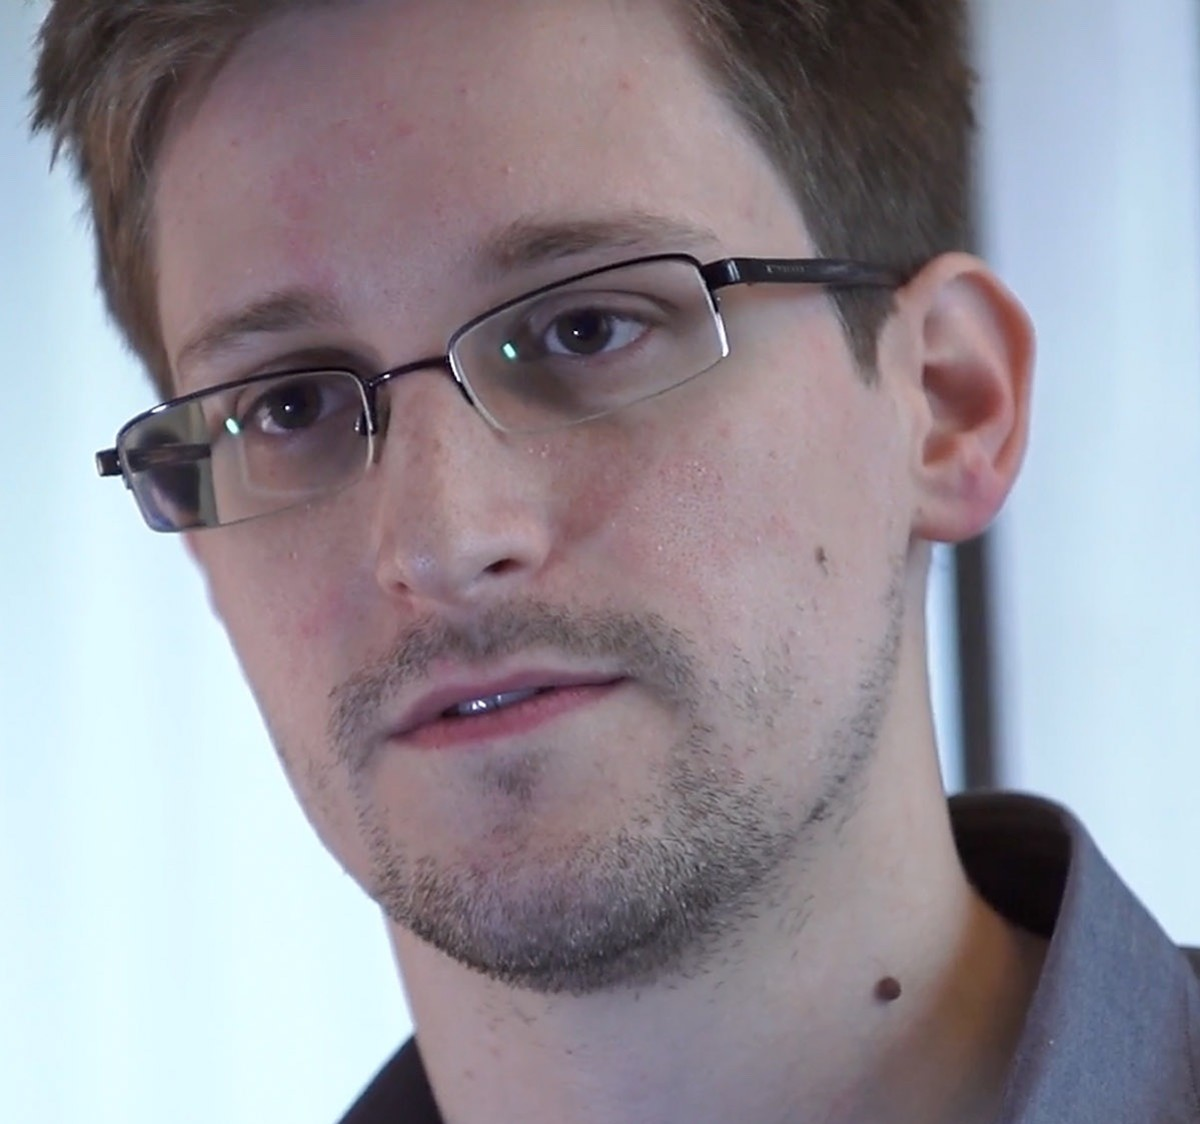 Edward Snowden - Education, Movie & Documentary - Biography